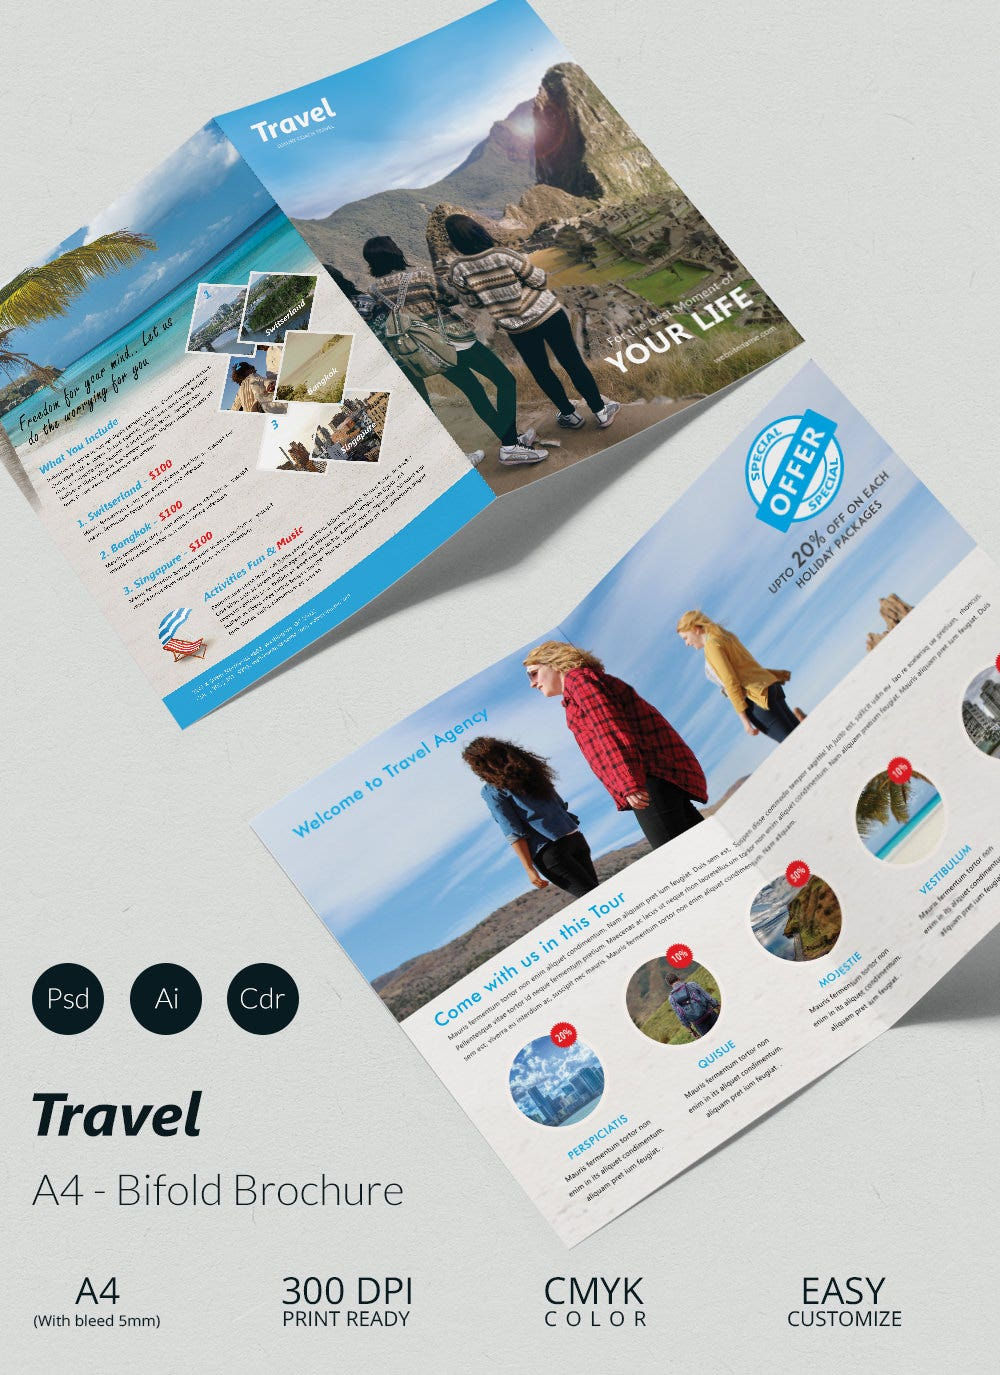 43+ Travel Brochure Templates - Free Sample, Example Format ...